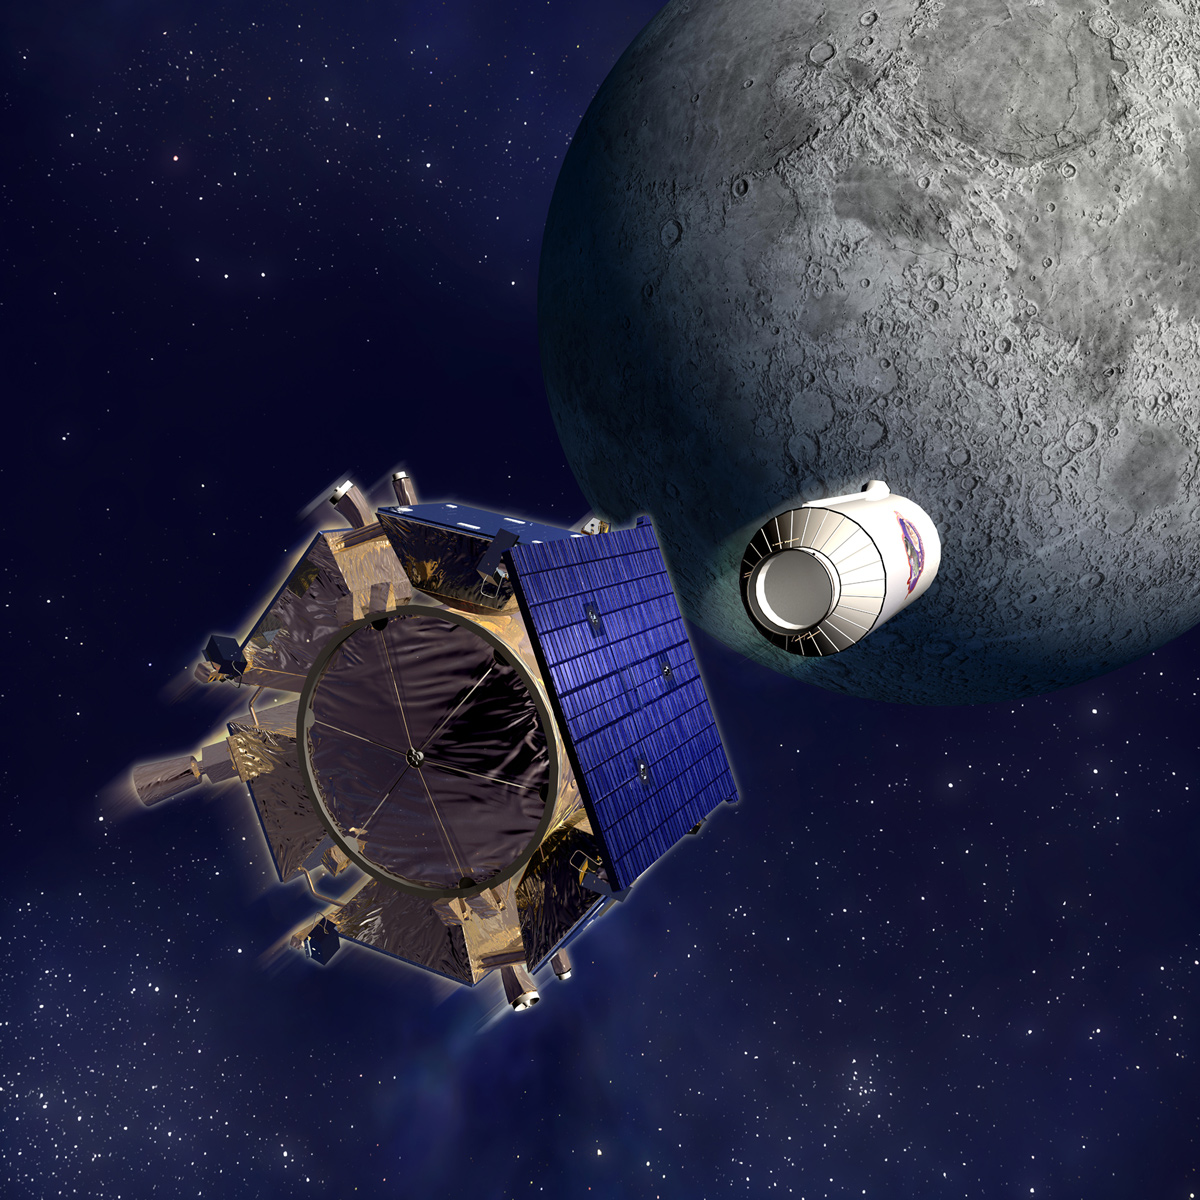 Illustration of two spacecraft flying toward the moon